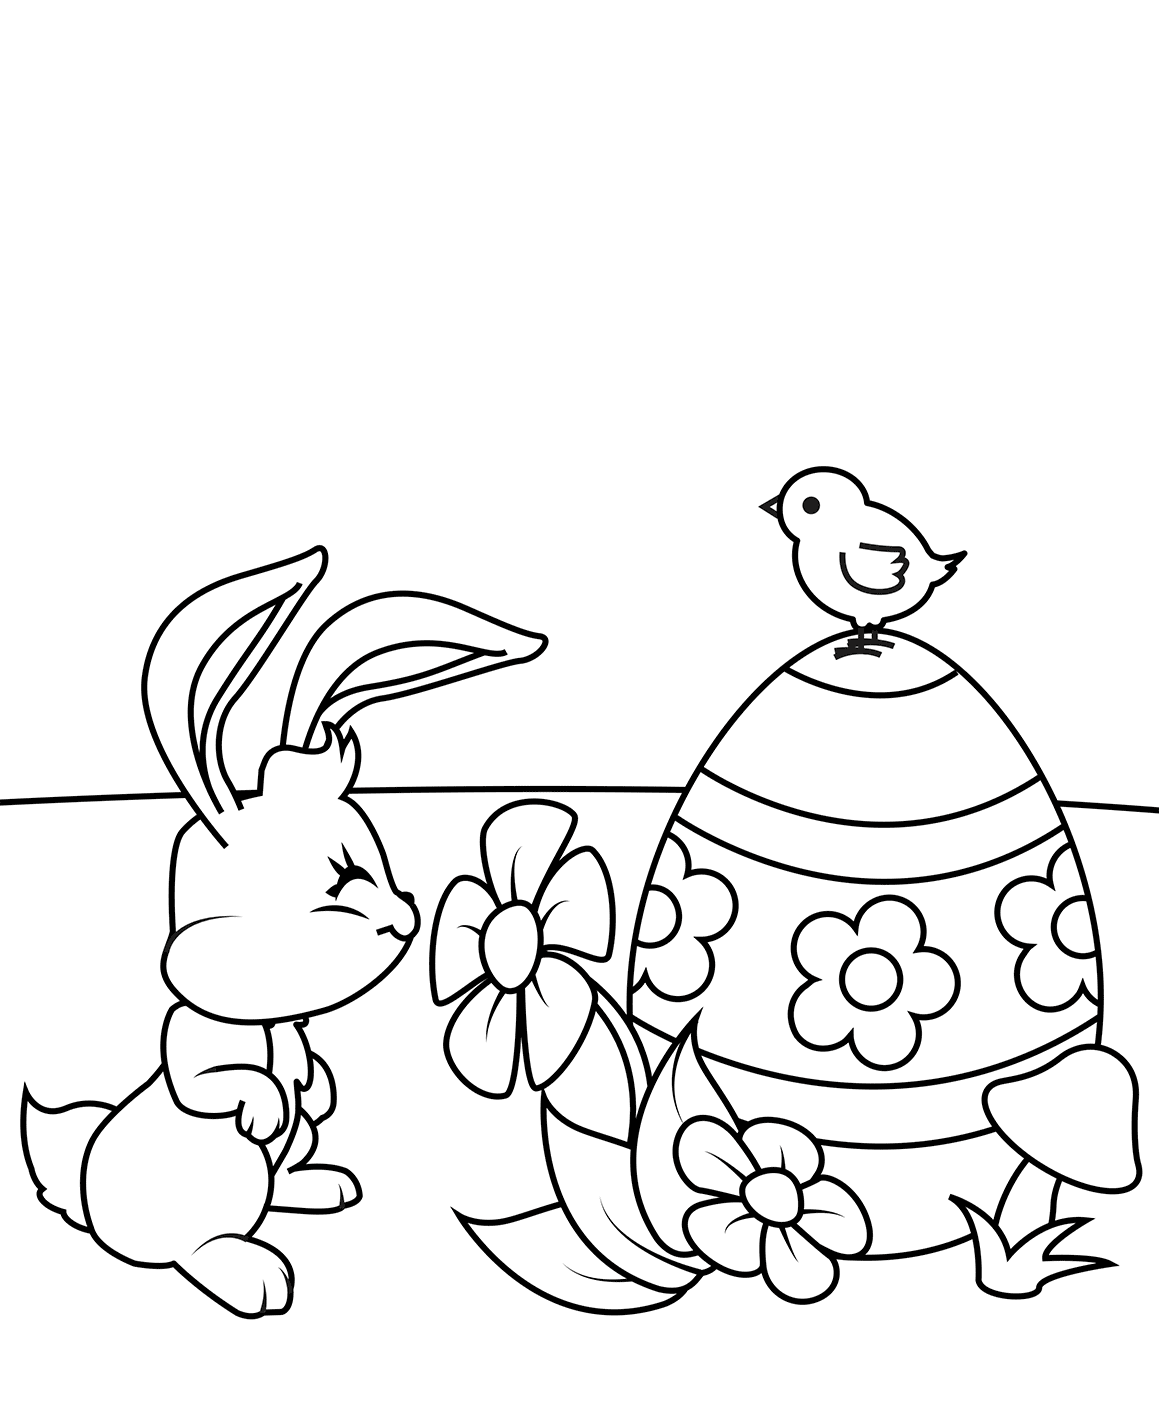 Cute Easter Chick Coloring Pages